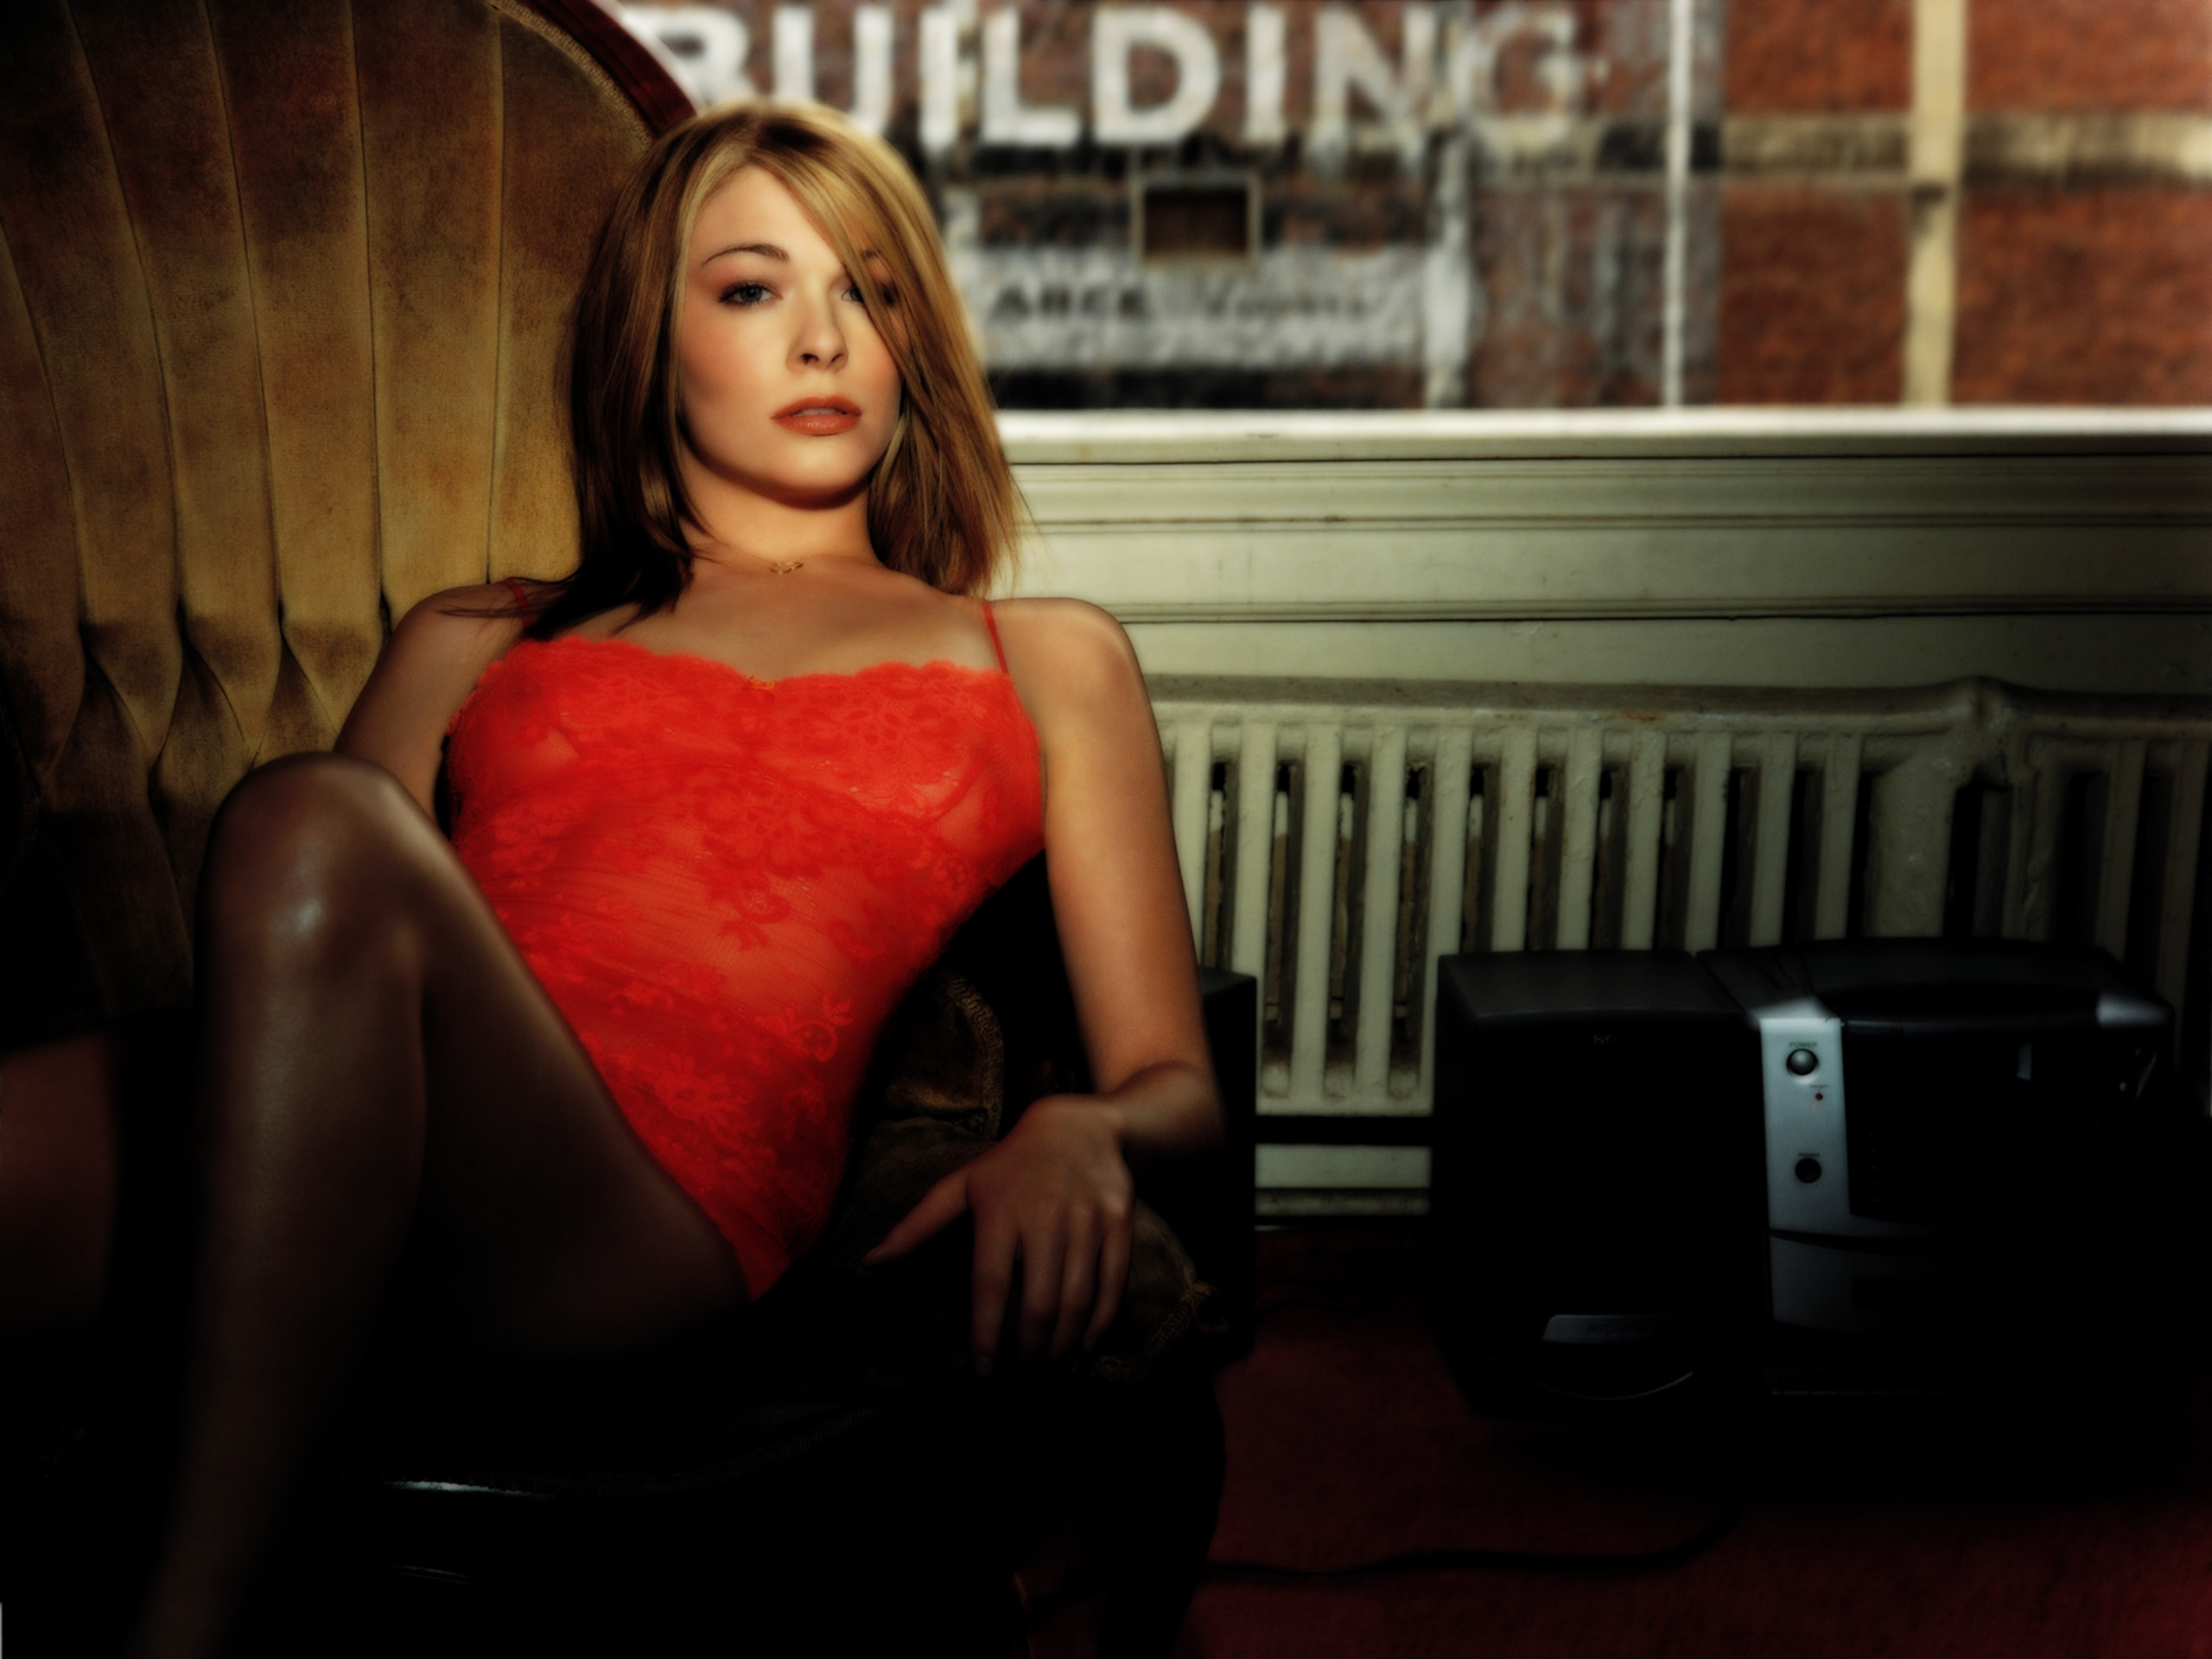 singer leann rimes wallpapers 98 wallpapers hd wallpapers. Black Bedroom Furniture Sets. Home Design Ideas